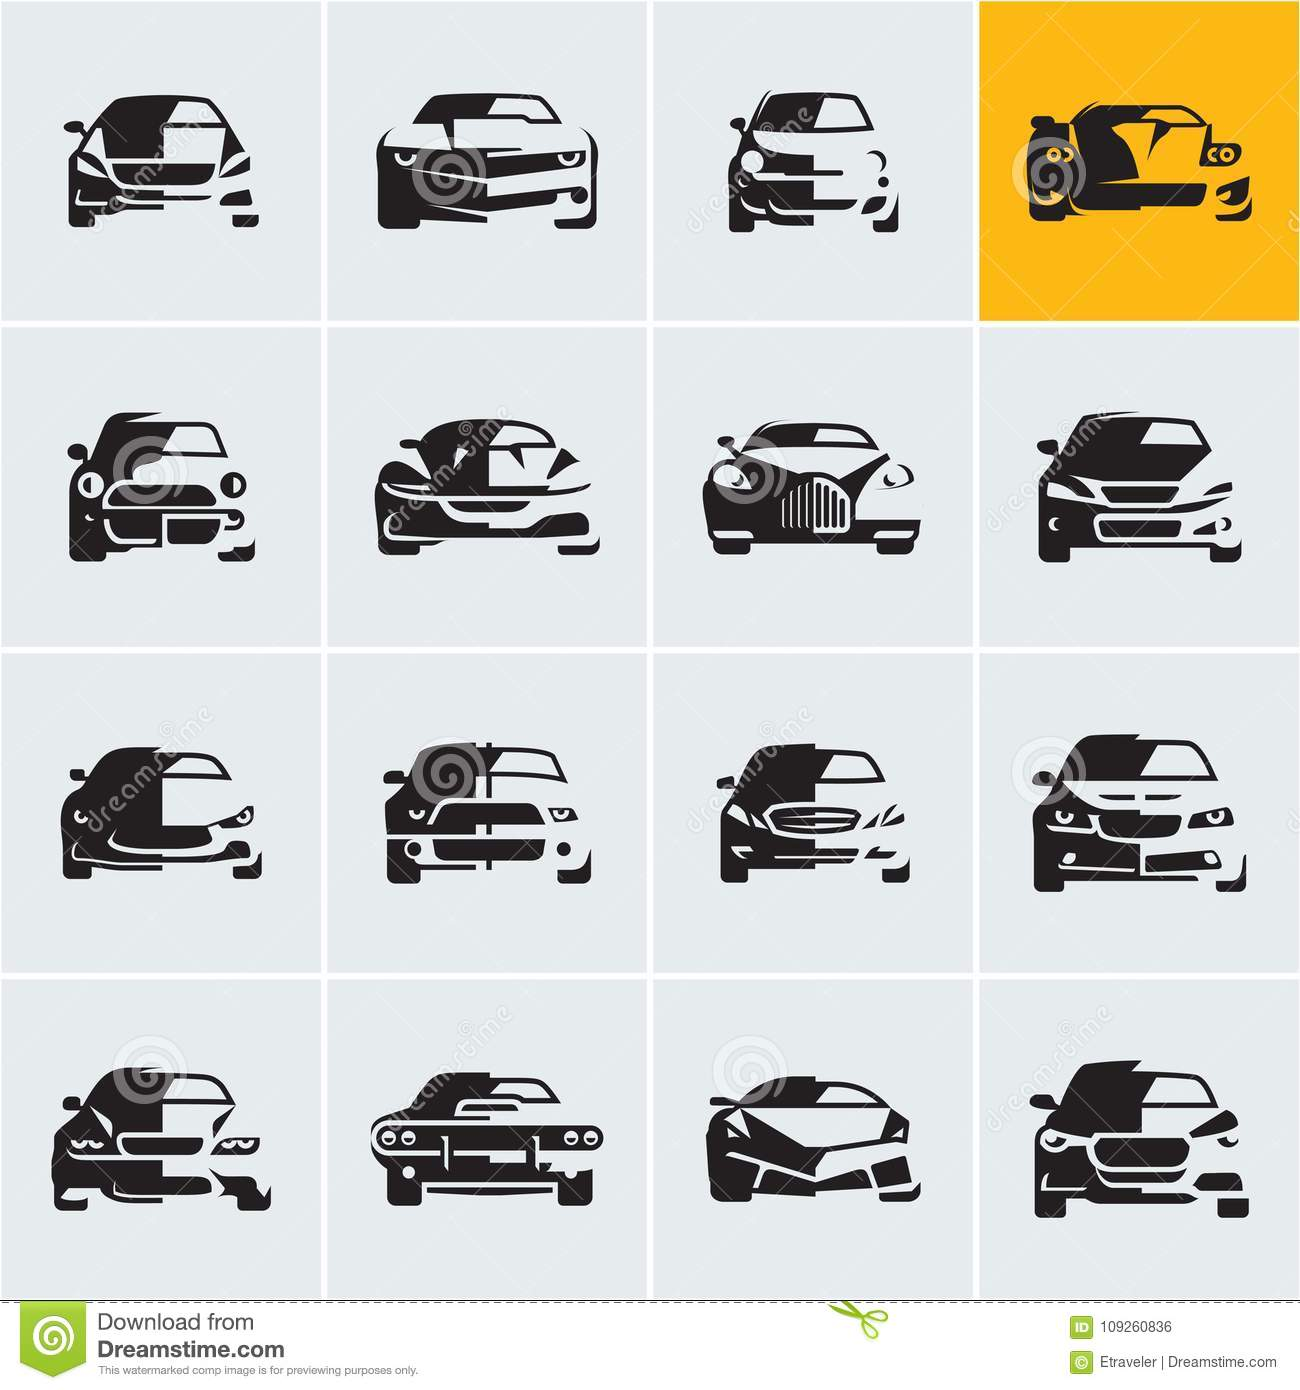 Car Icons Graphic Vector Cars Car Front View Car Logo Design